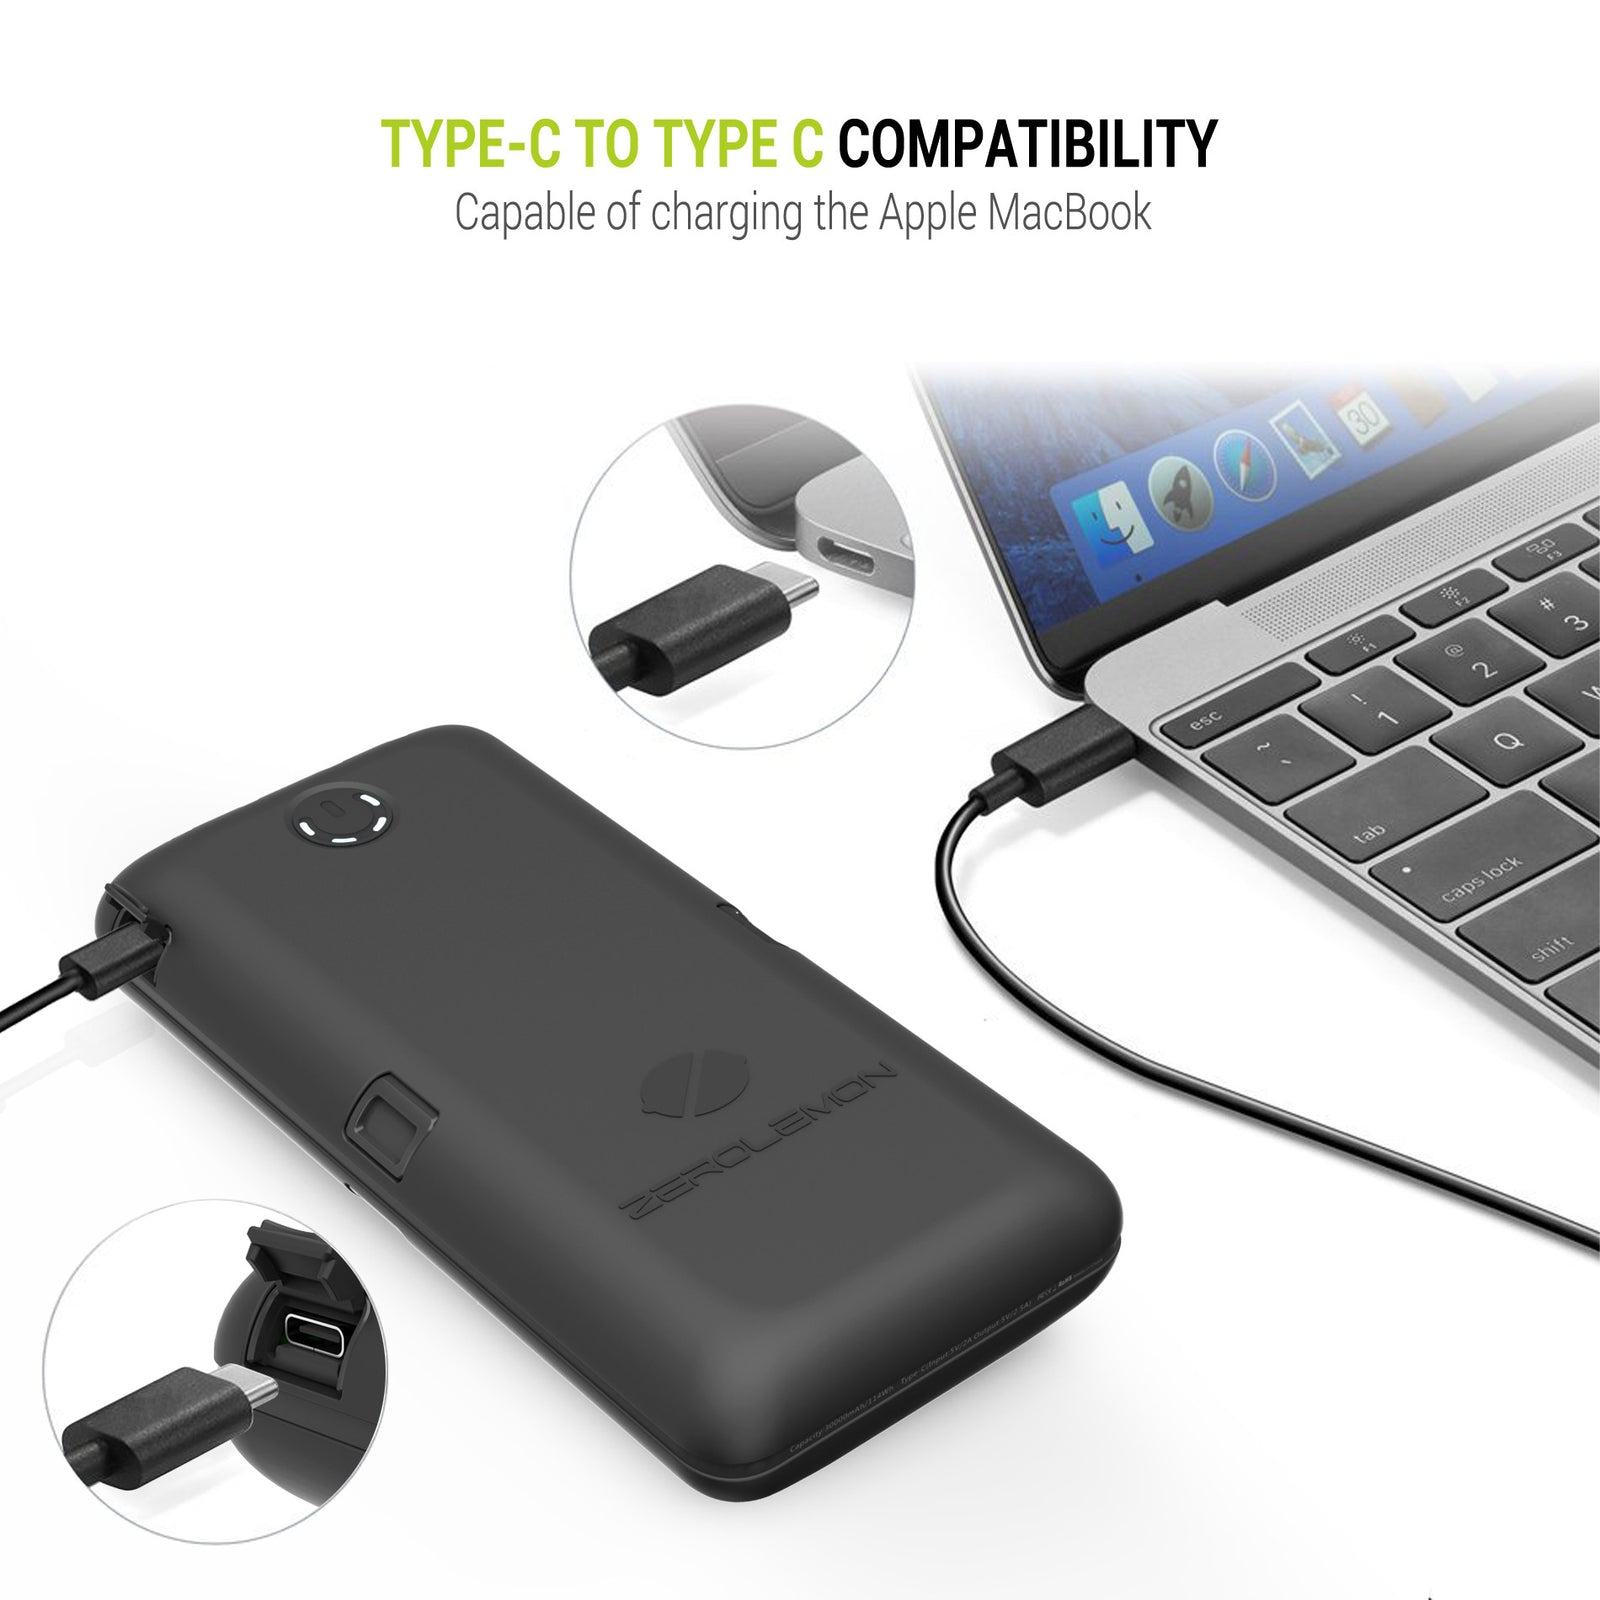 ToughJuice V3.0 External Battery 30000mAh [Shipping to US Only]